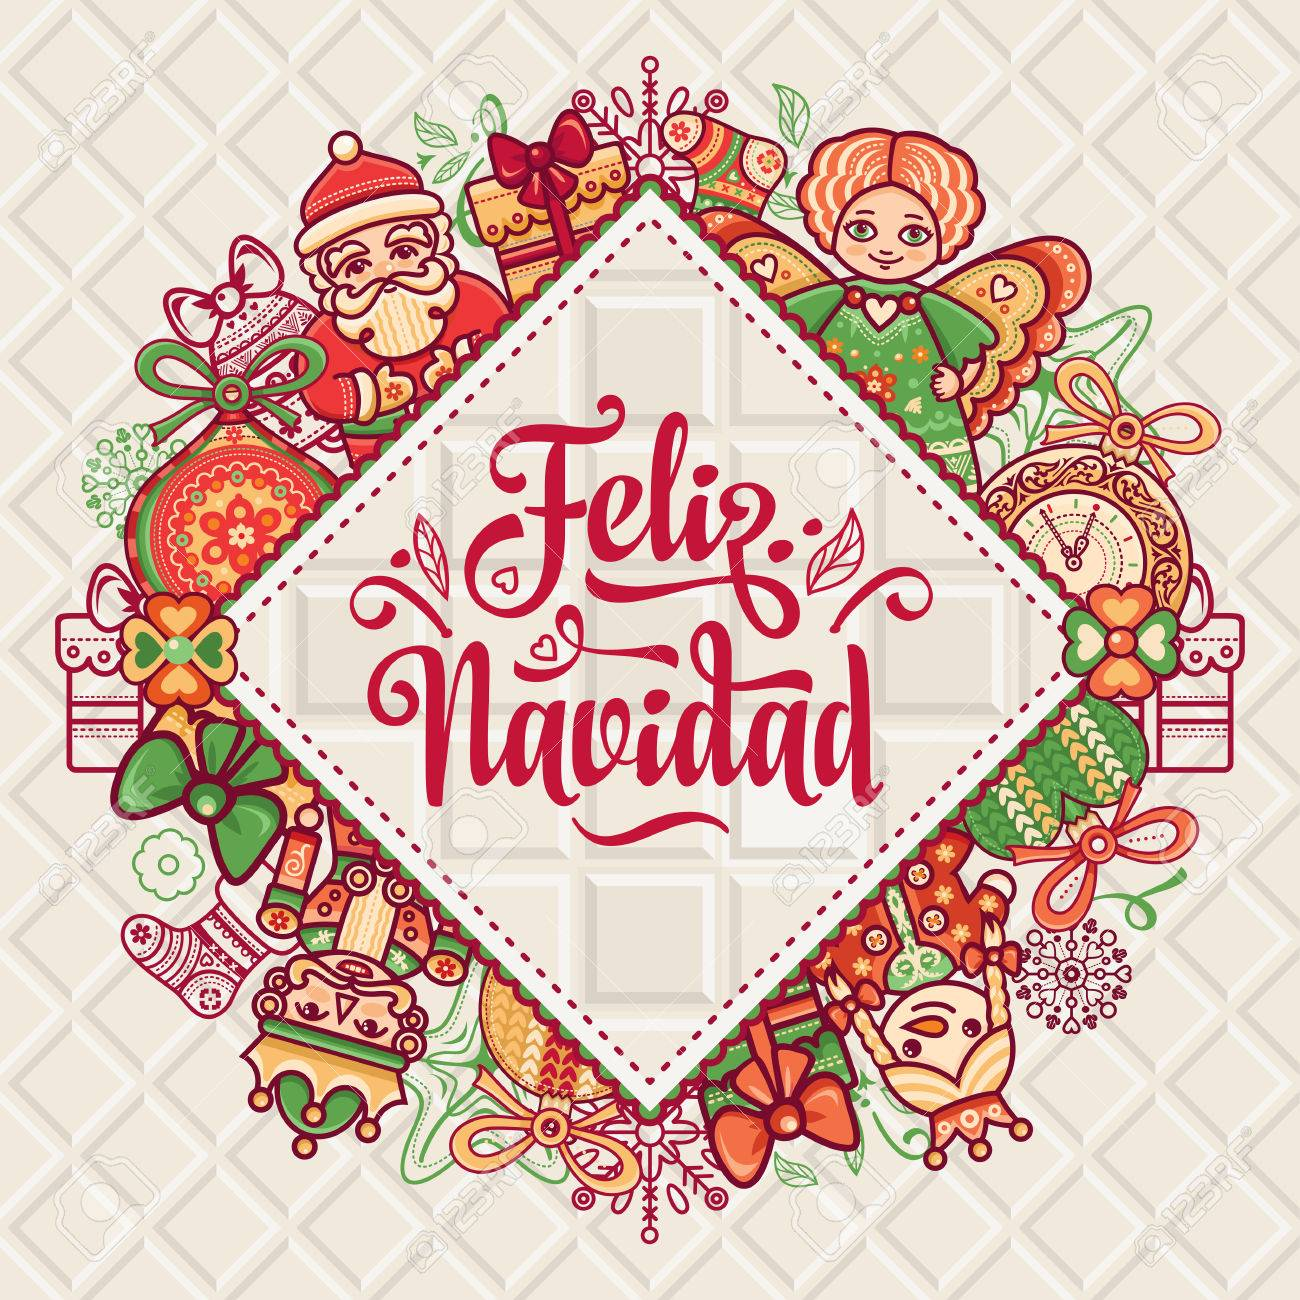 christmas decorations for invitations and greeting cards winter toy feliz navidad xmas card